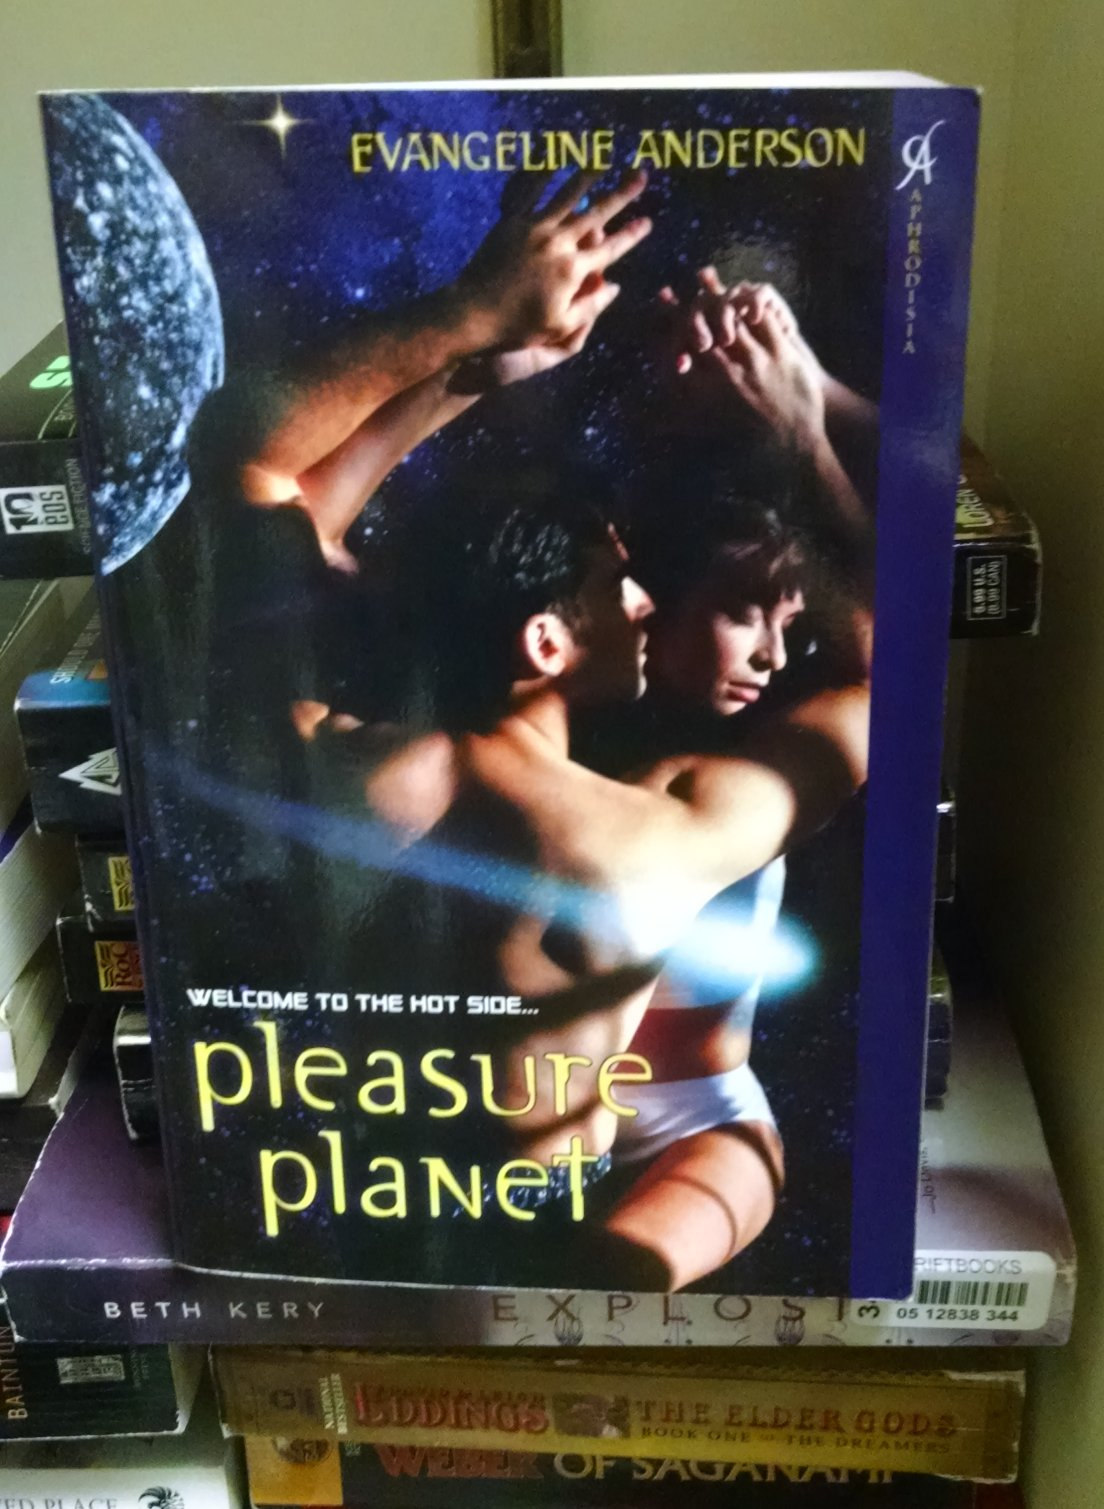 His pleasure planet is Uranus.